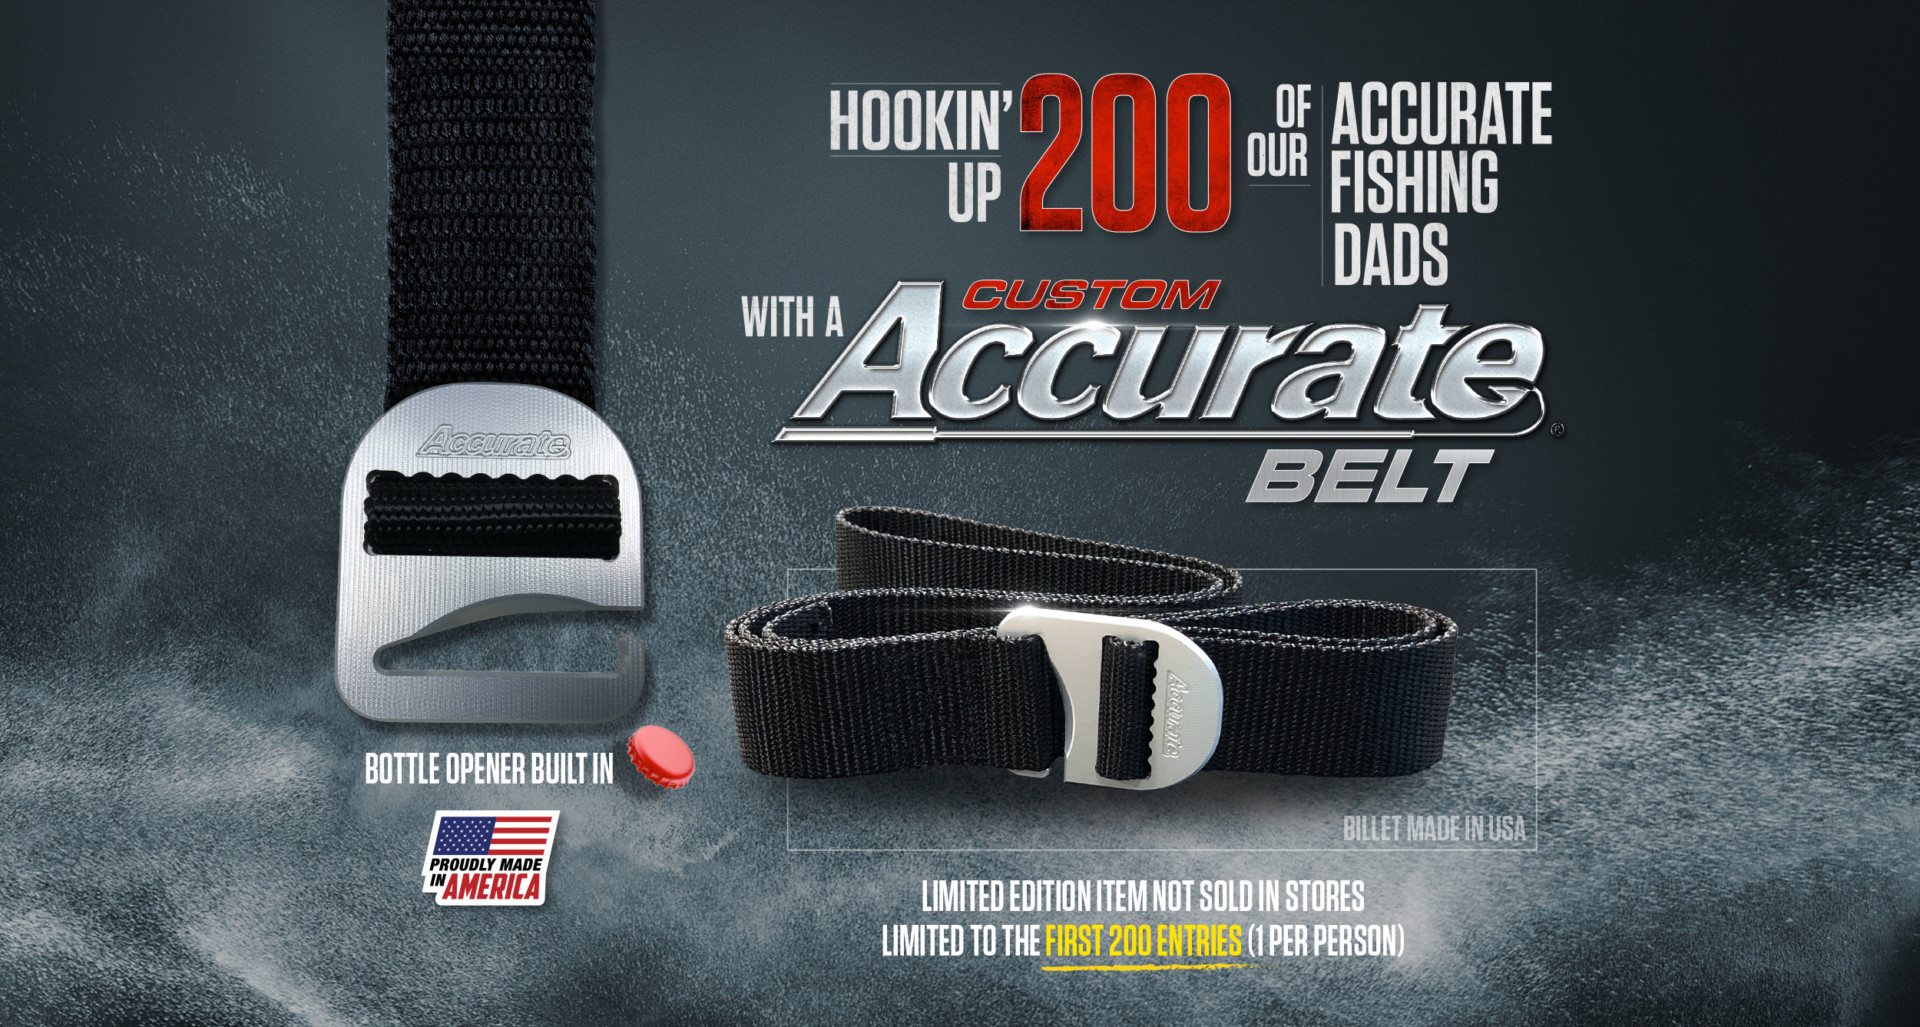 Hook'in up 200 of Our Accurate Fishing Dad's With a Custom Accurate Belt Buckle/Belt Billet. Made in USA Limited Addition Item NOT Sold In Stores. Drawing for Winner on Father's Day!